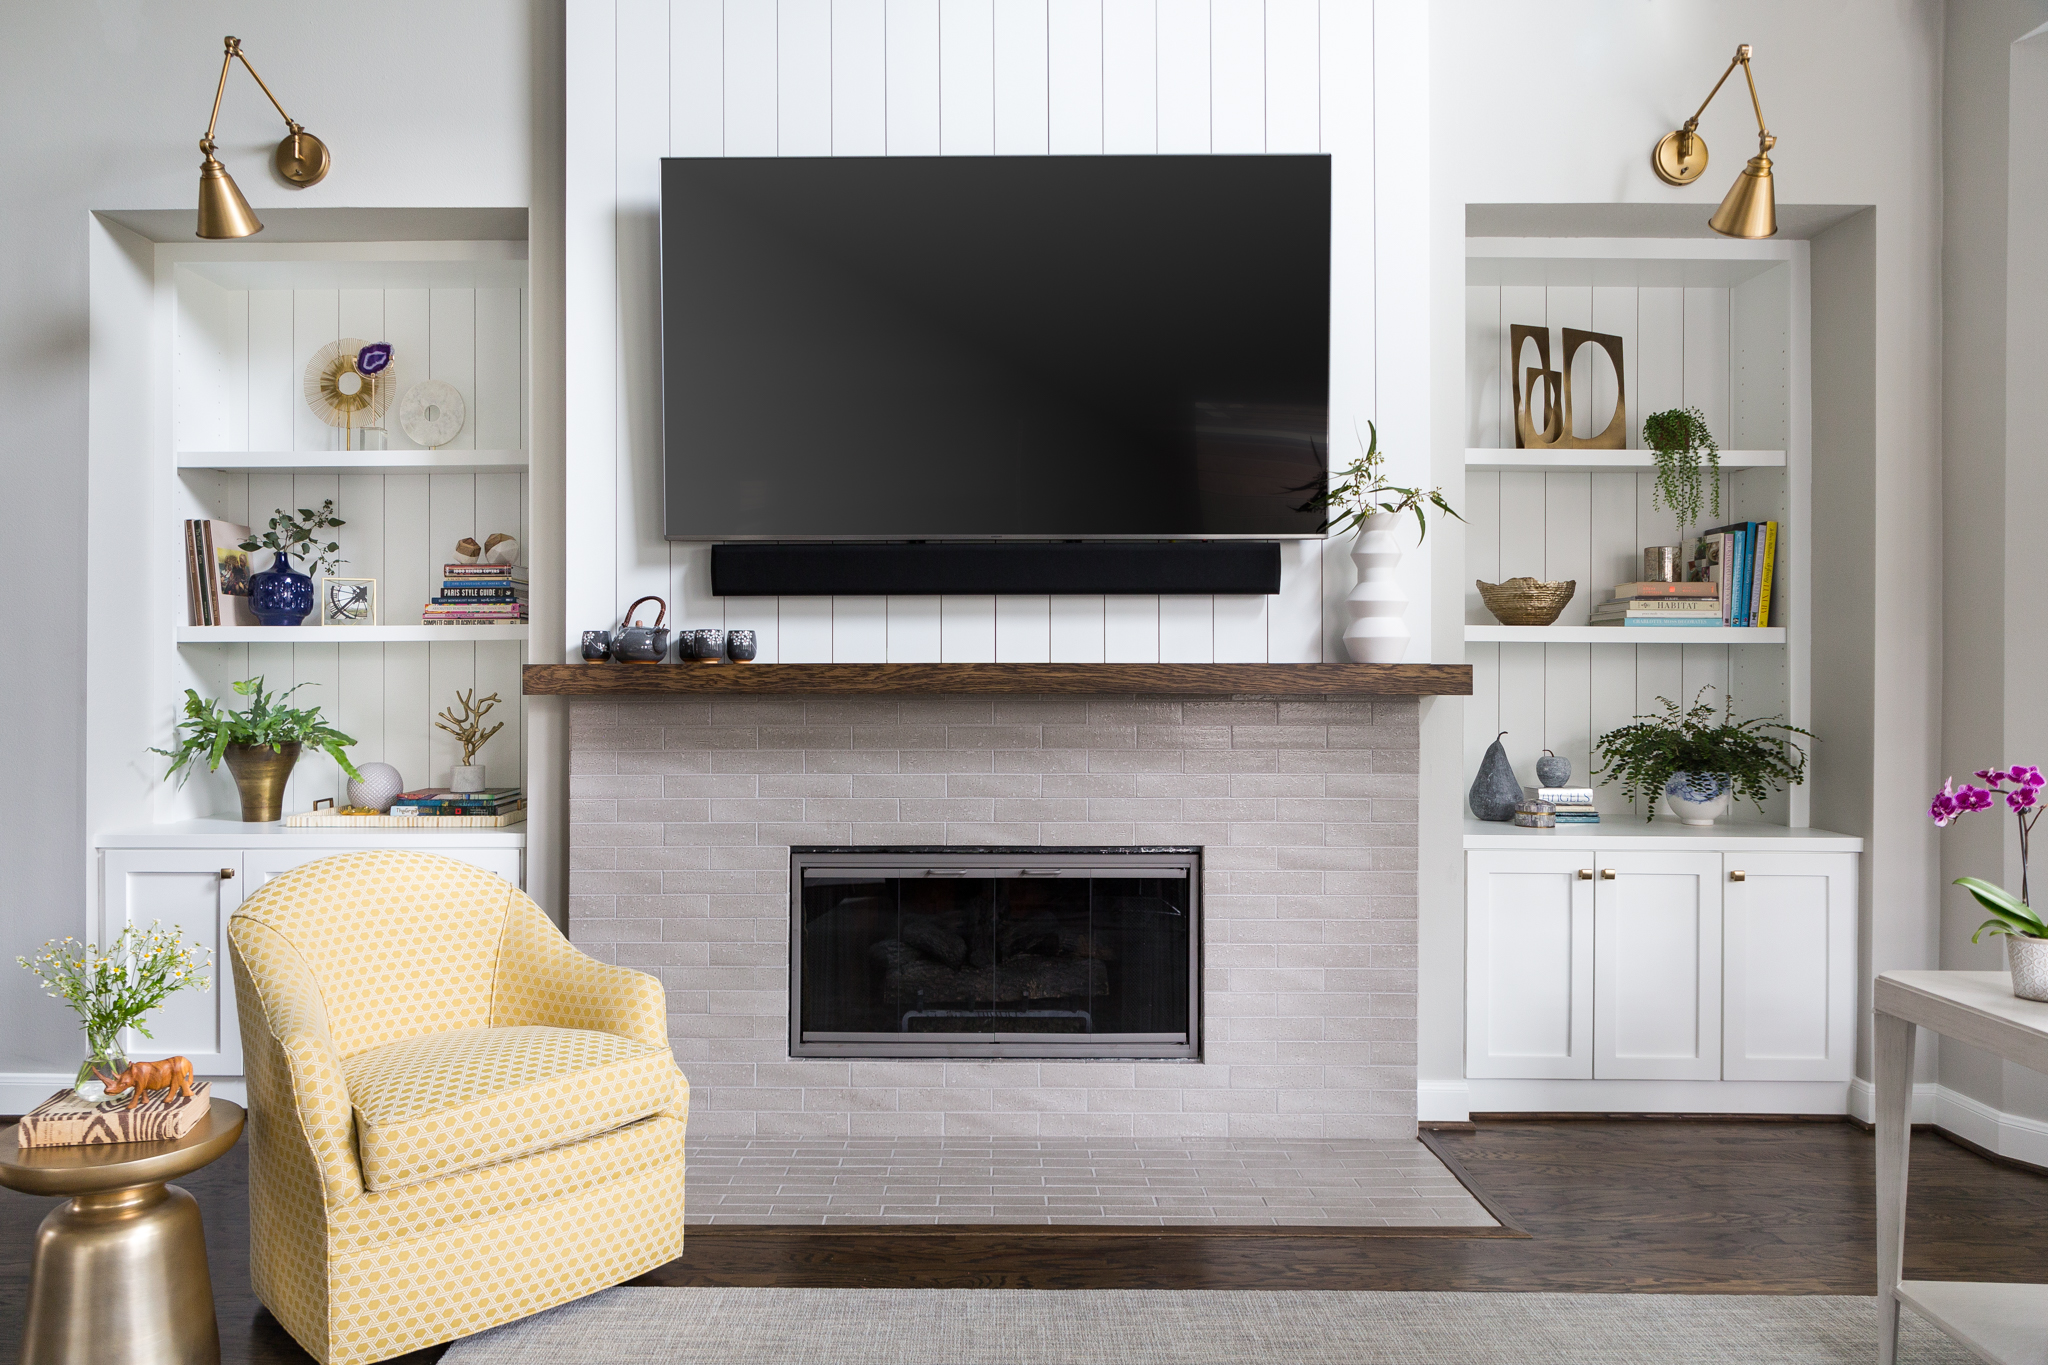 White painted vertical shiplap on fireplace wall and in backs of cabinetry - SW Extra White | Designer: Carla Aston, Photographer: Colleen Scott #whitepaint #whitepaintcolors